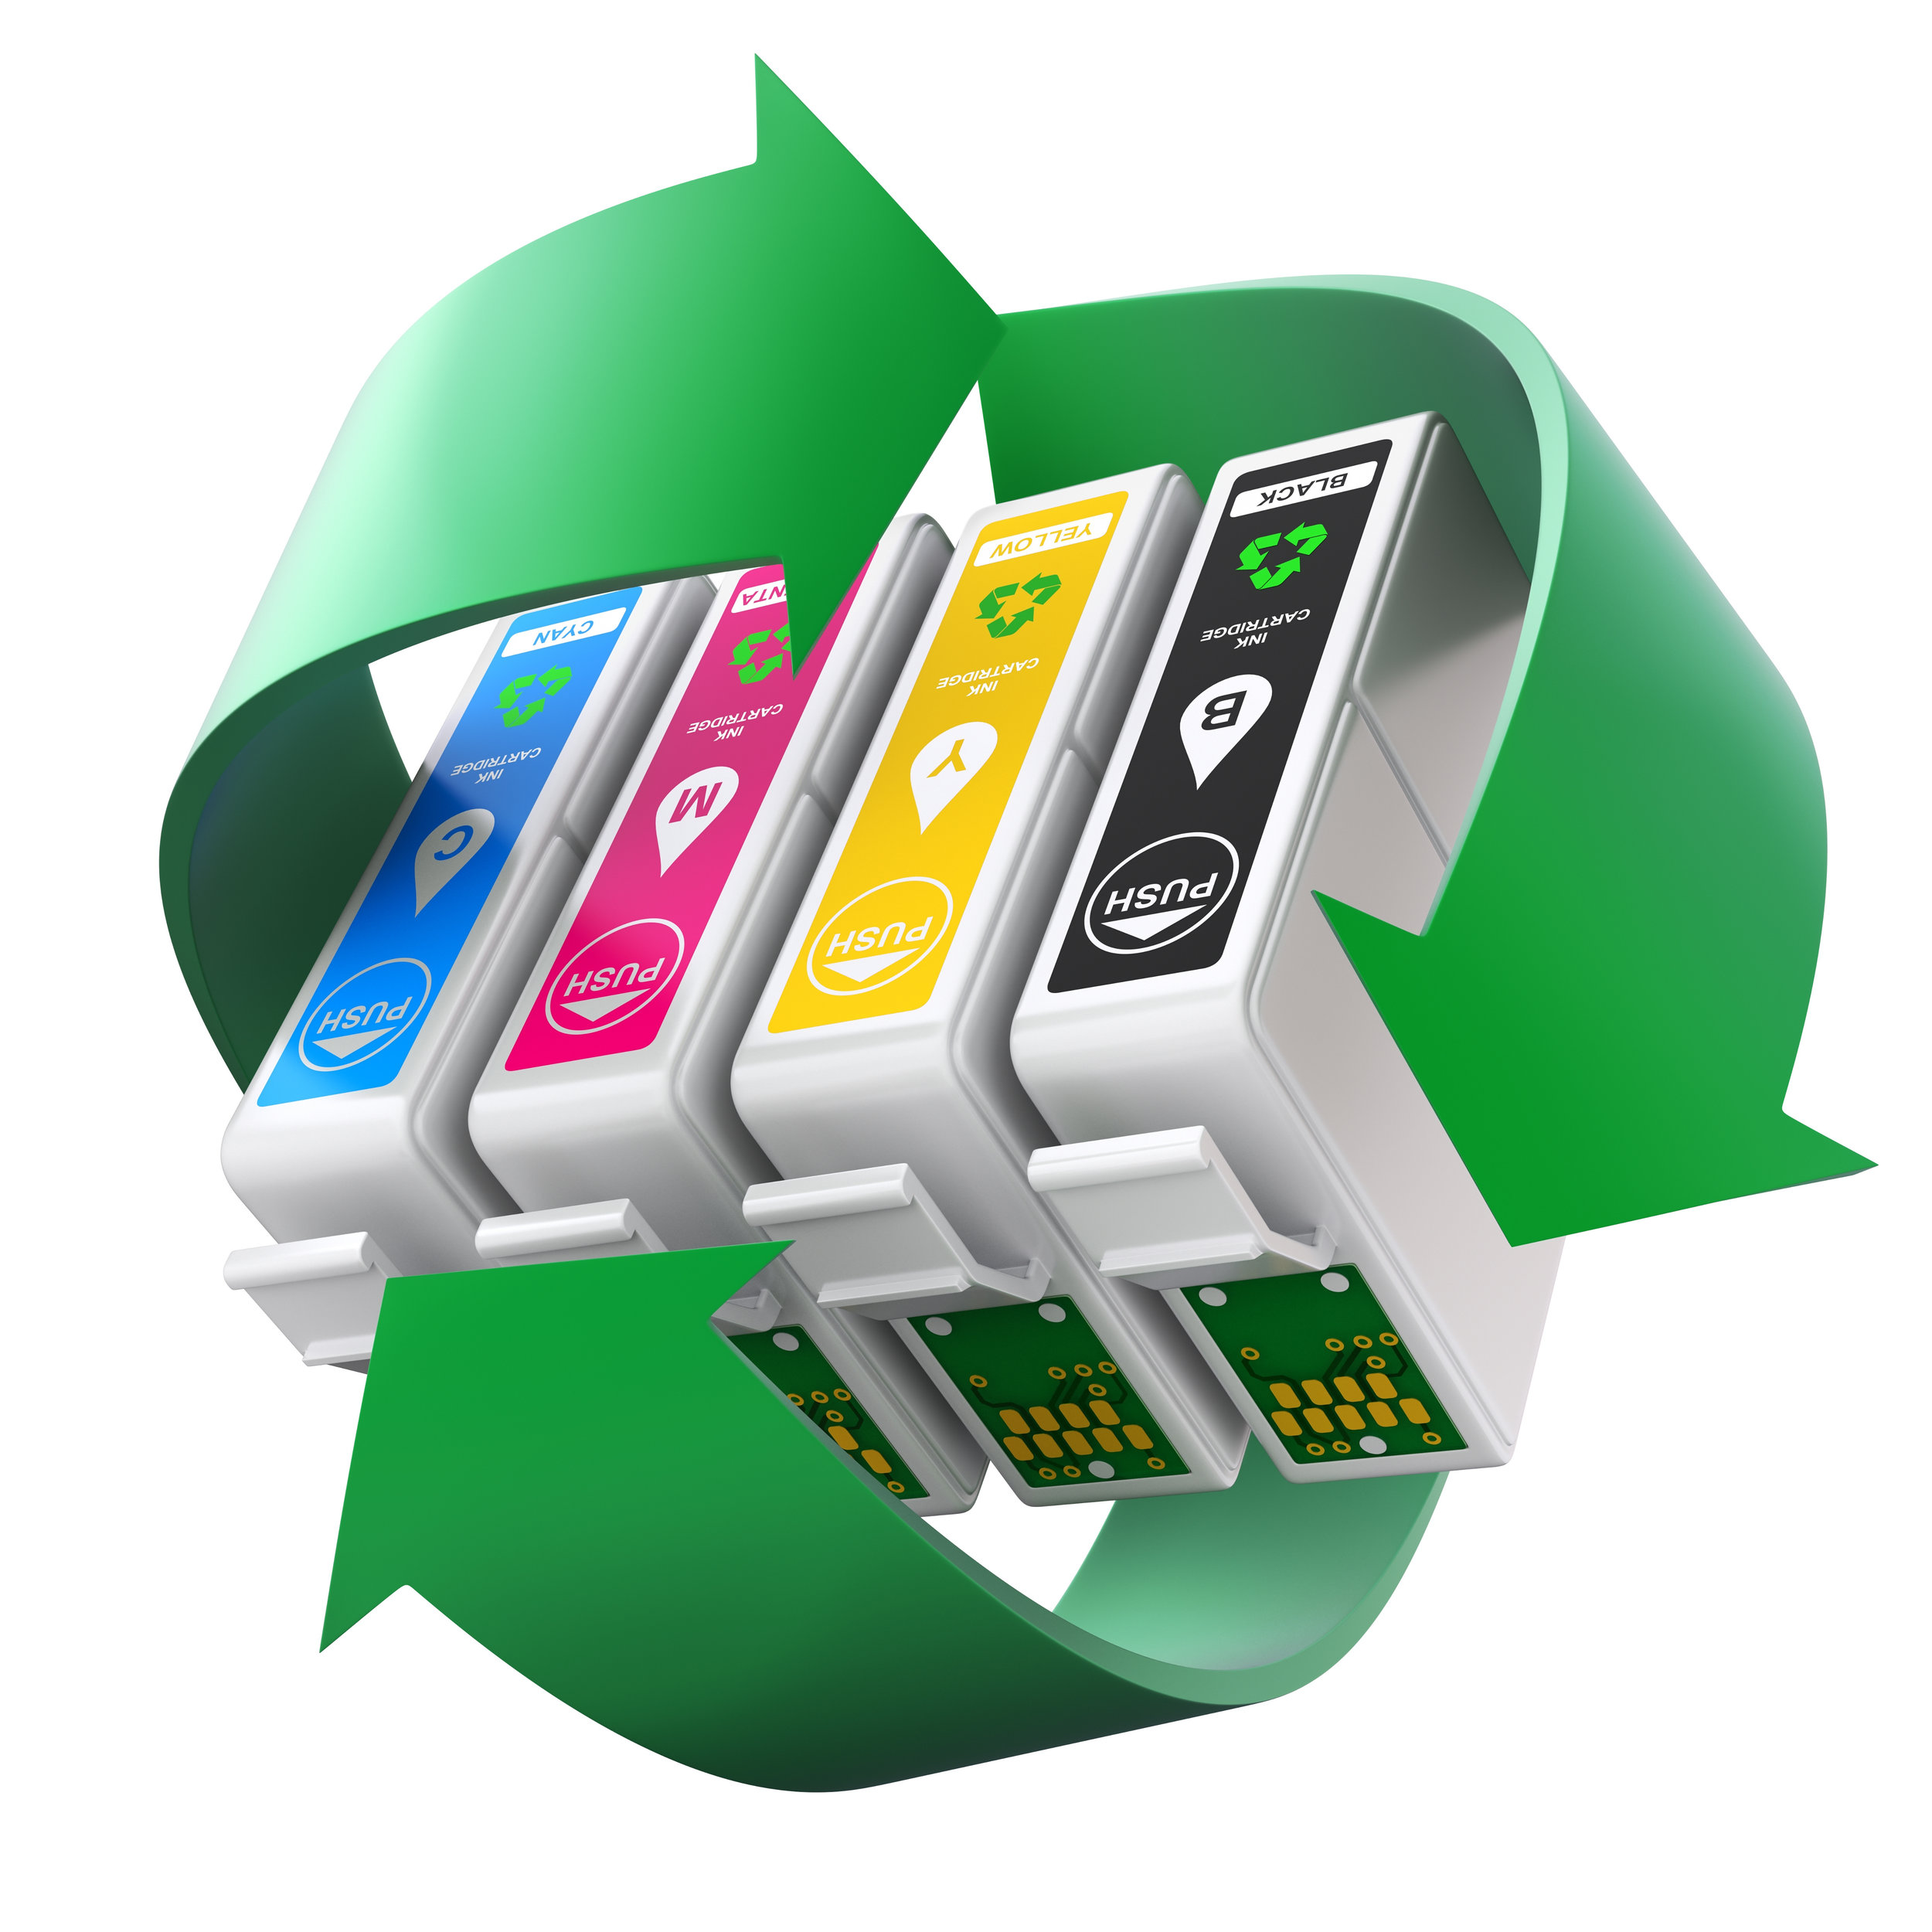 CMYK set of cartridges with recycling symbol.jpg